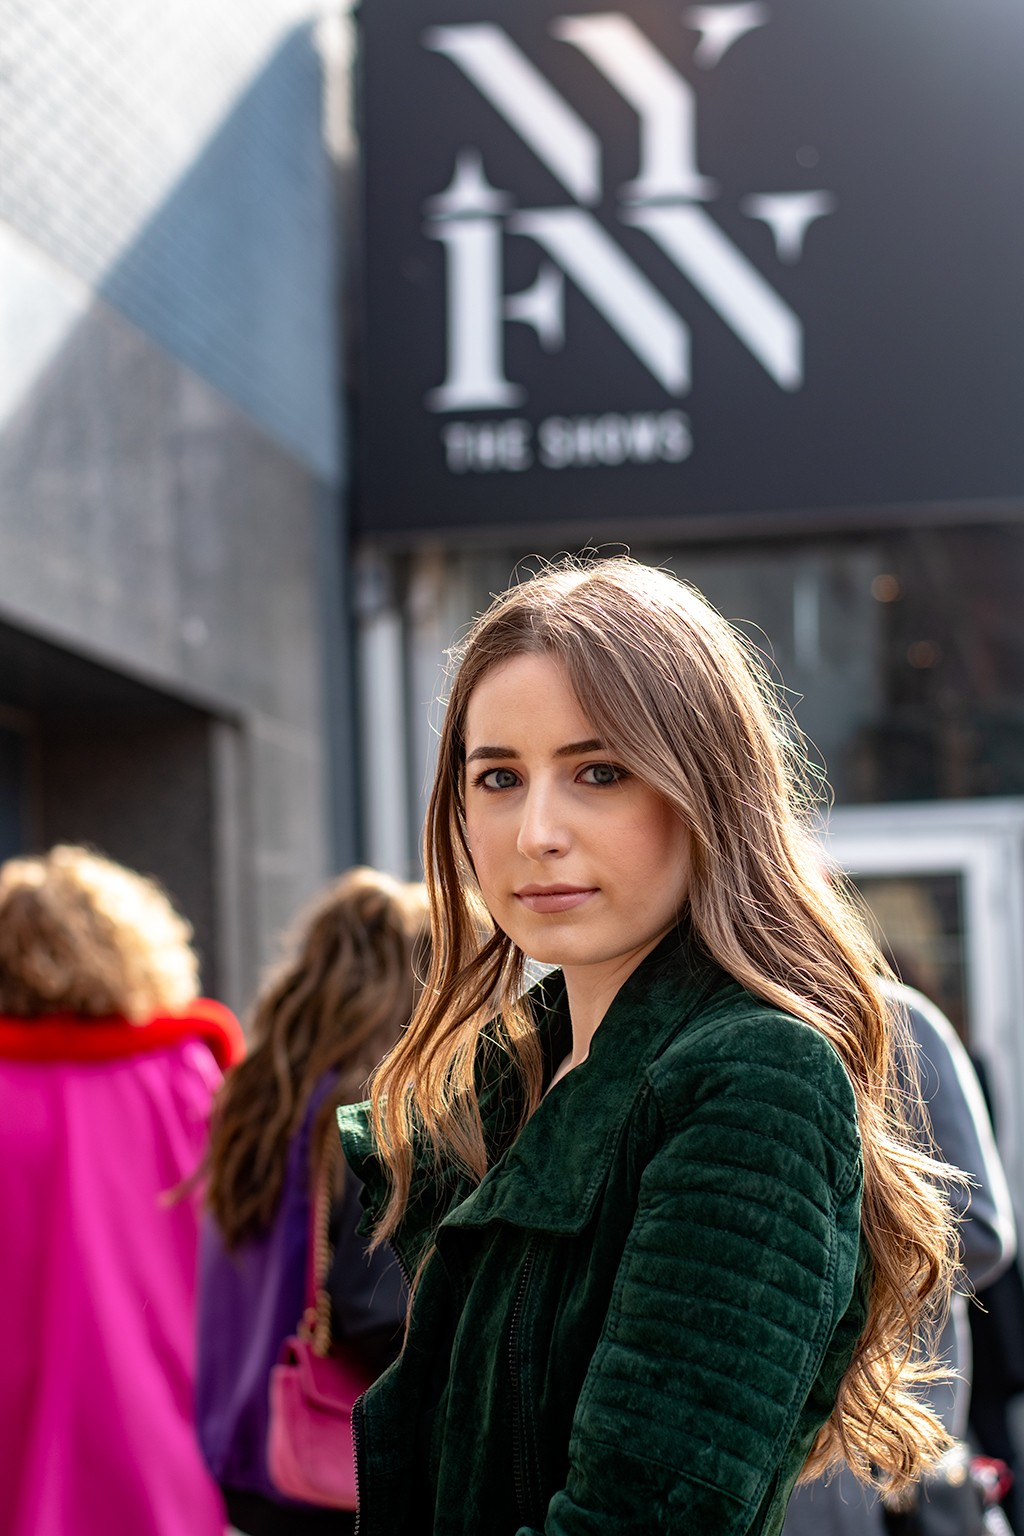 Hairstyle ideas for long hair: Shot of woman with long, loose honey brown waves wearing an emerald green jumper at NYFW